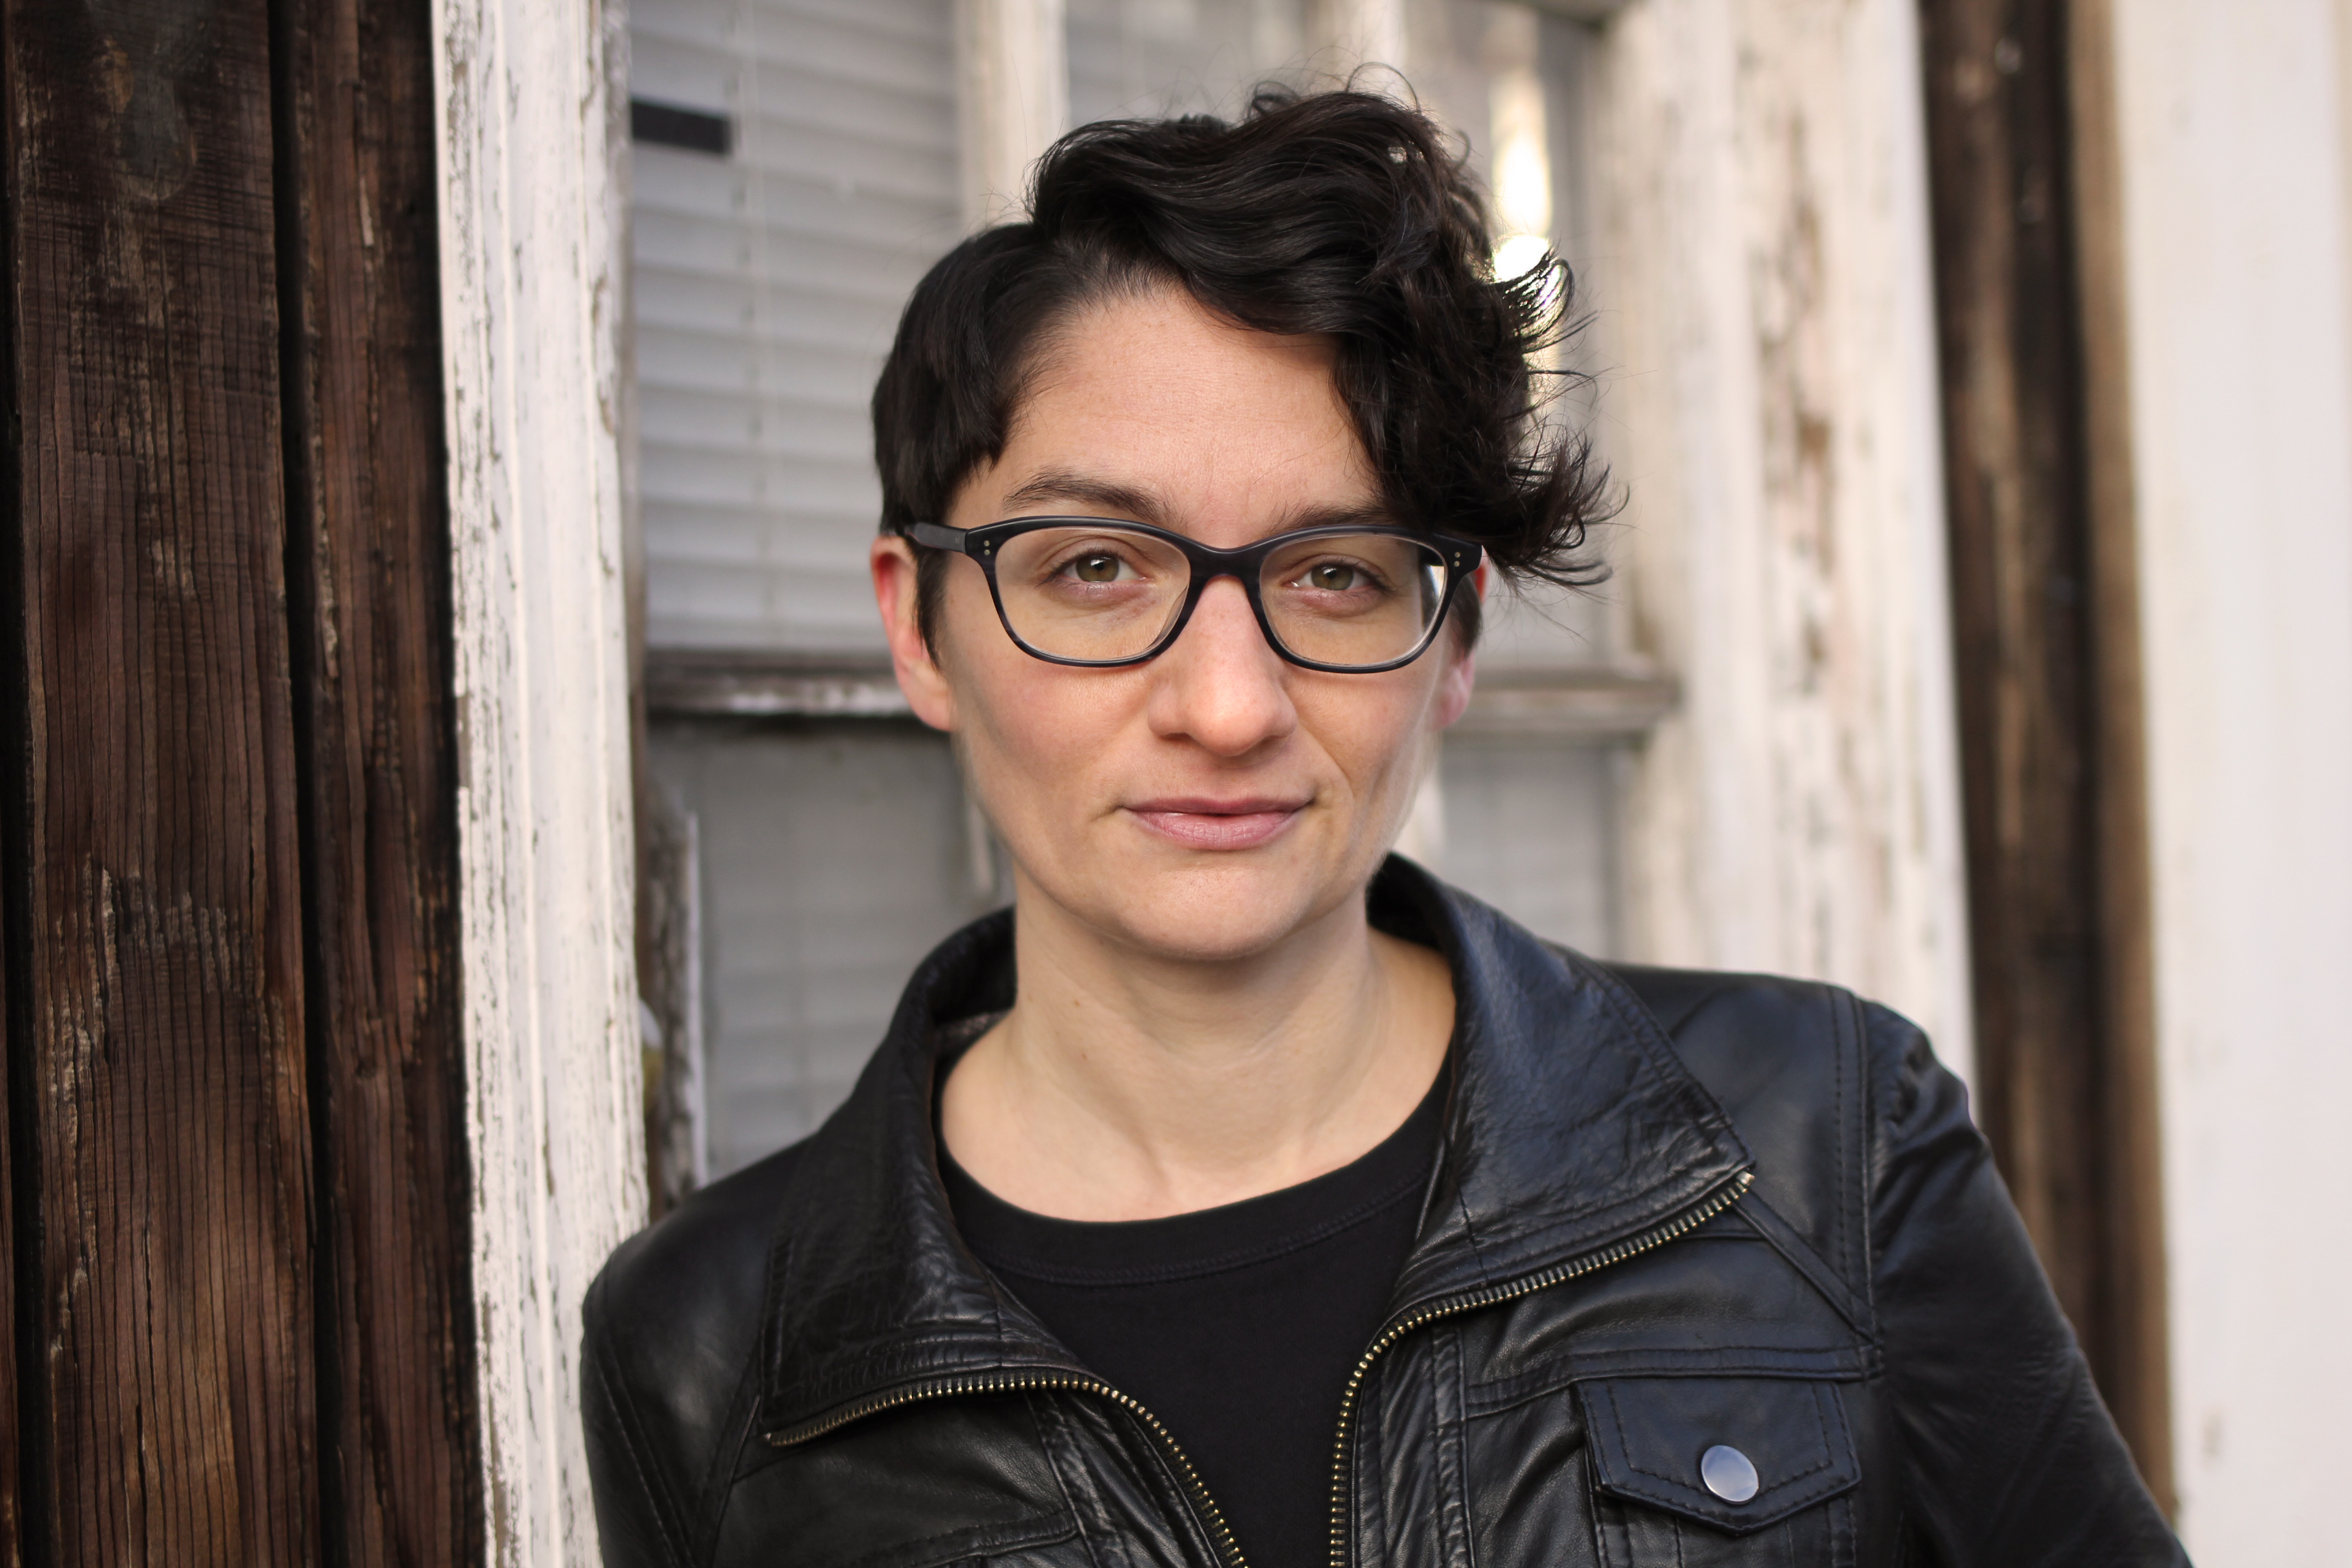 Tomboyland author Melissa Faliveno, who is white with short, dark hair and glasses.